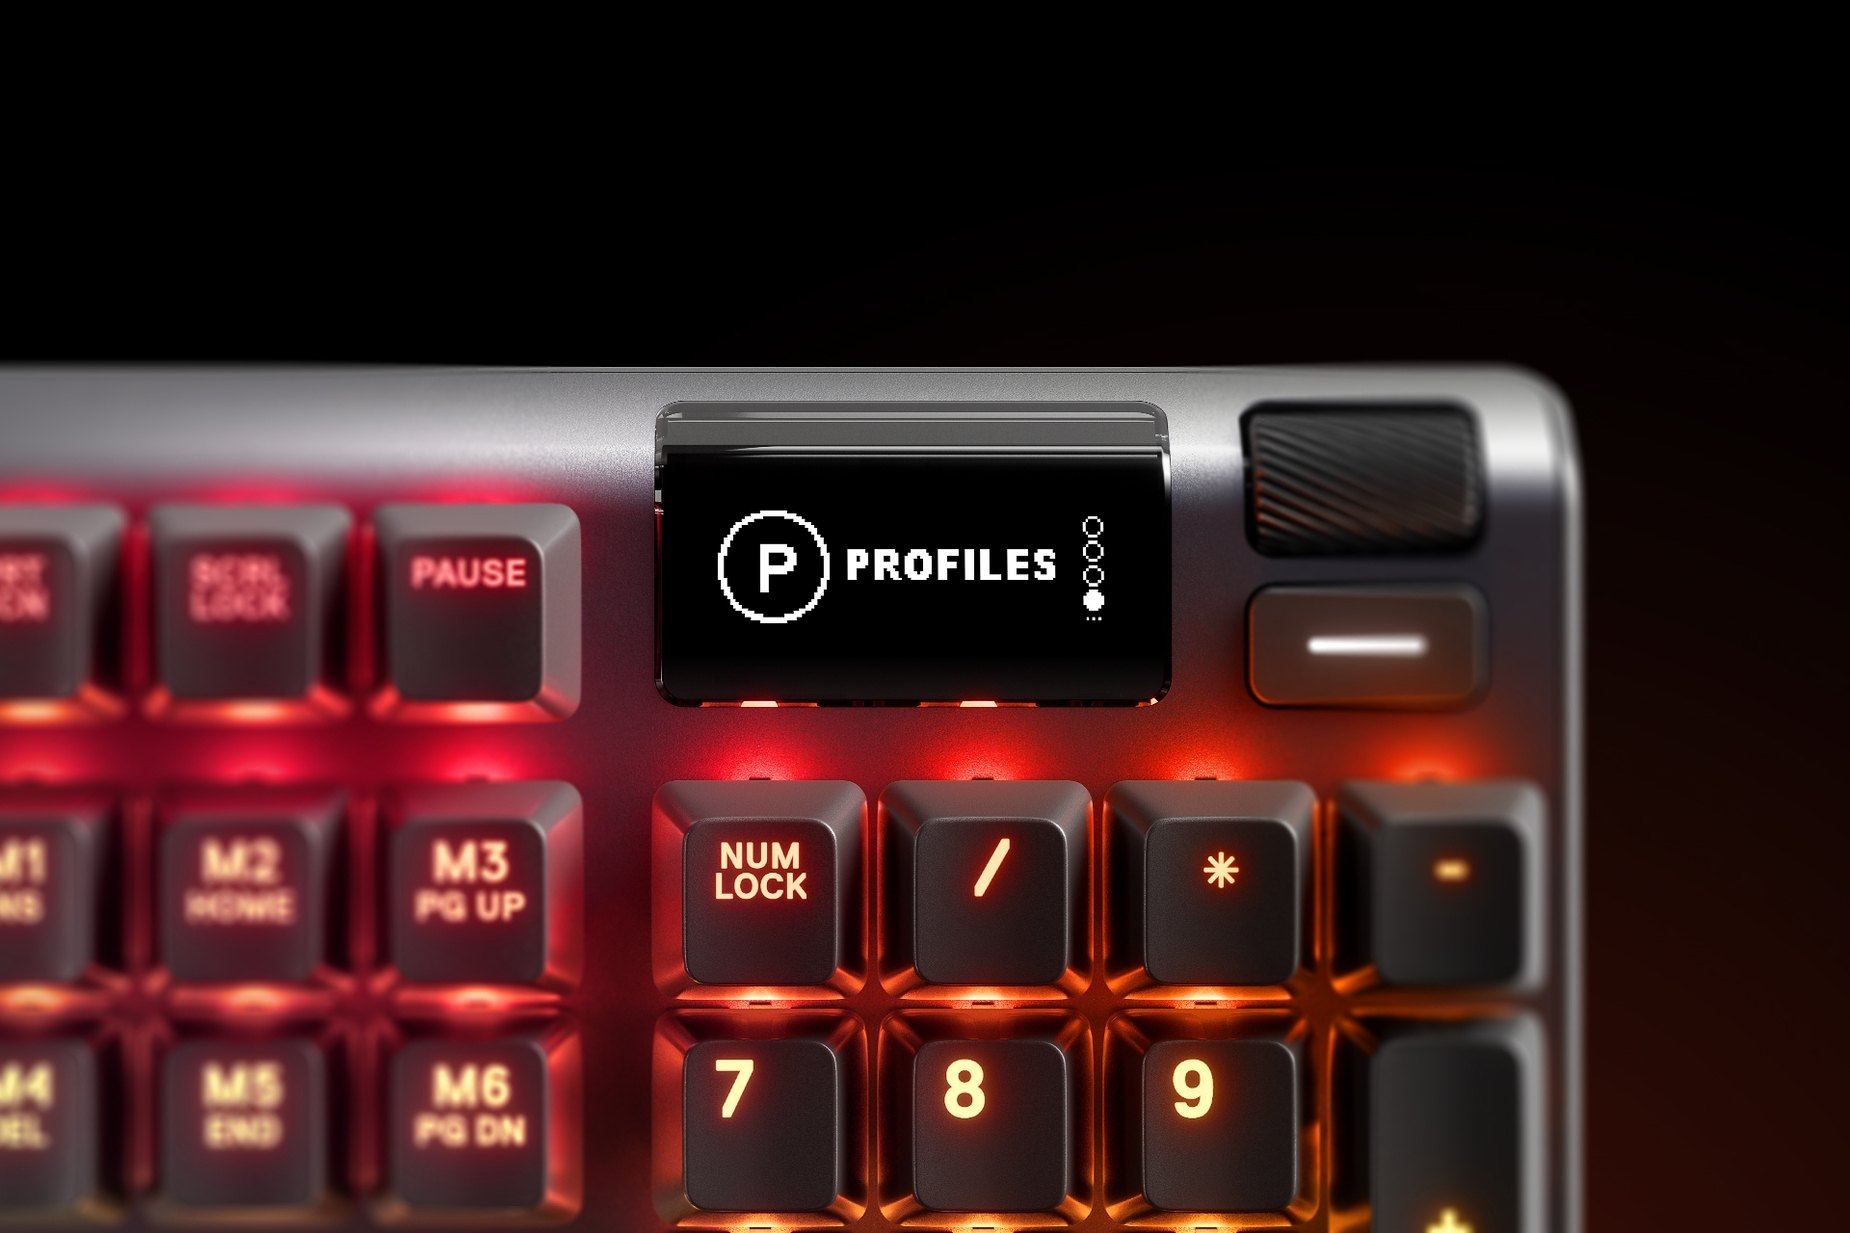 Zoomed in view of the multimedia and settings controls/volume roller on the German - APEX PRO gaming keyboard